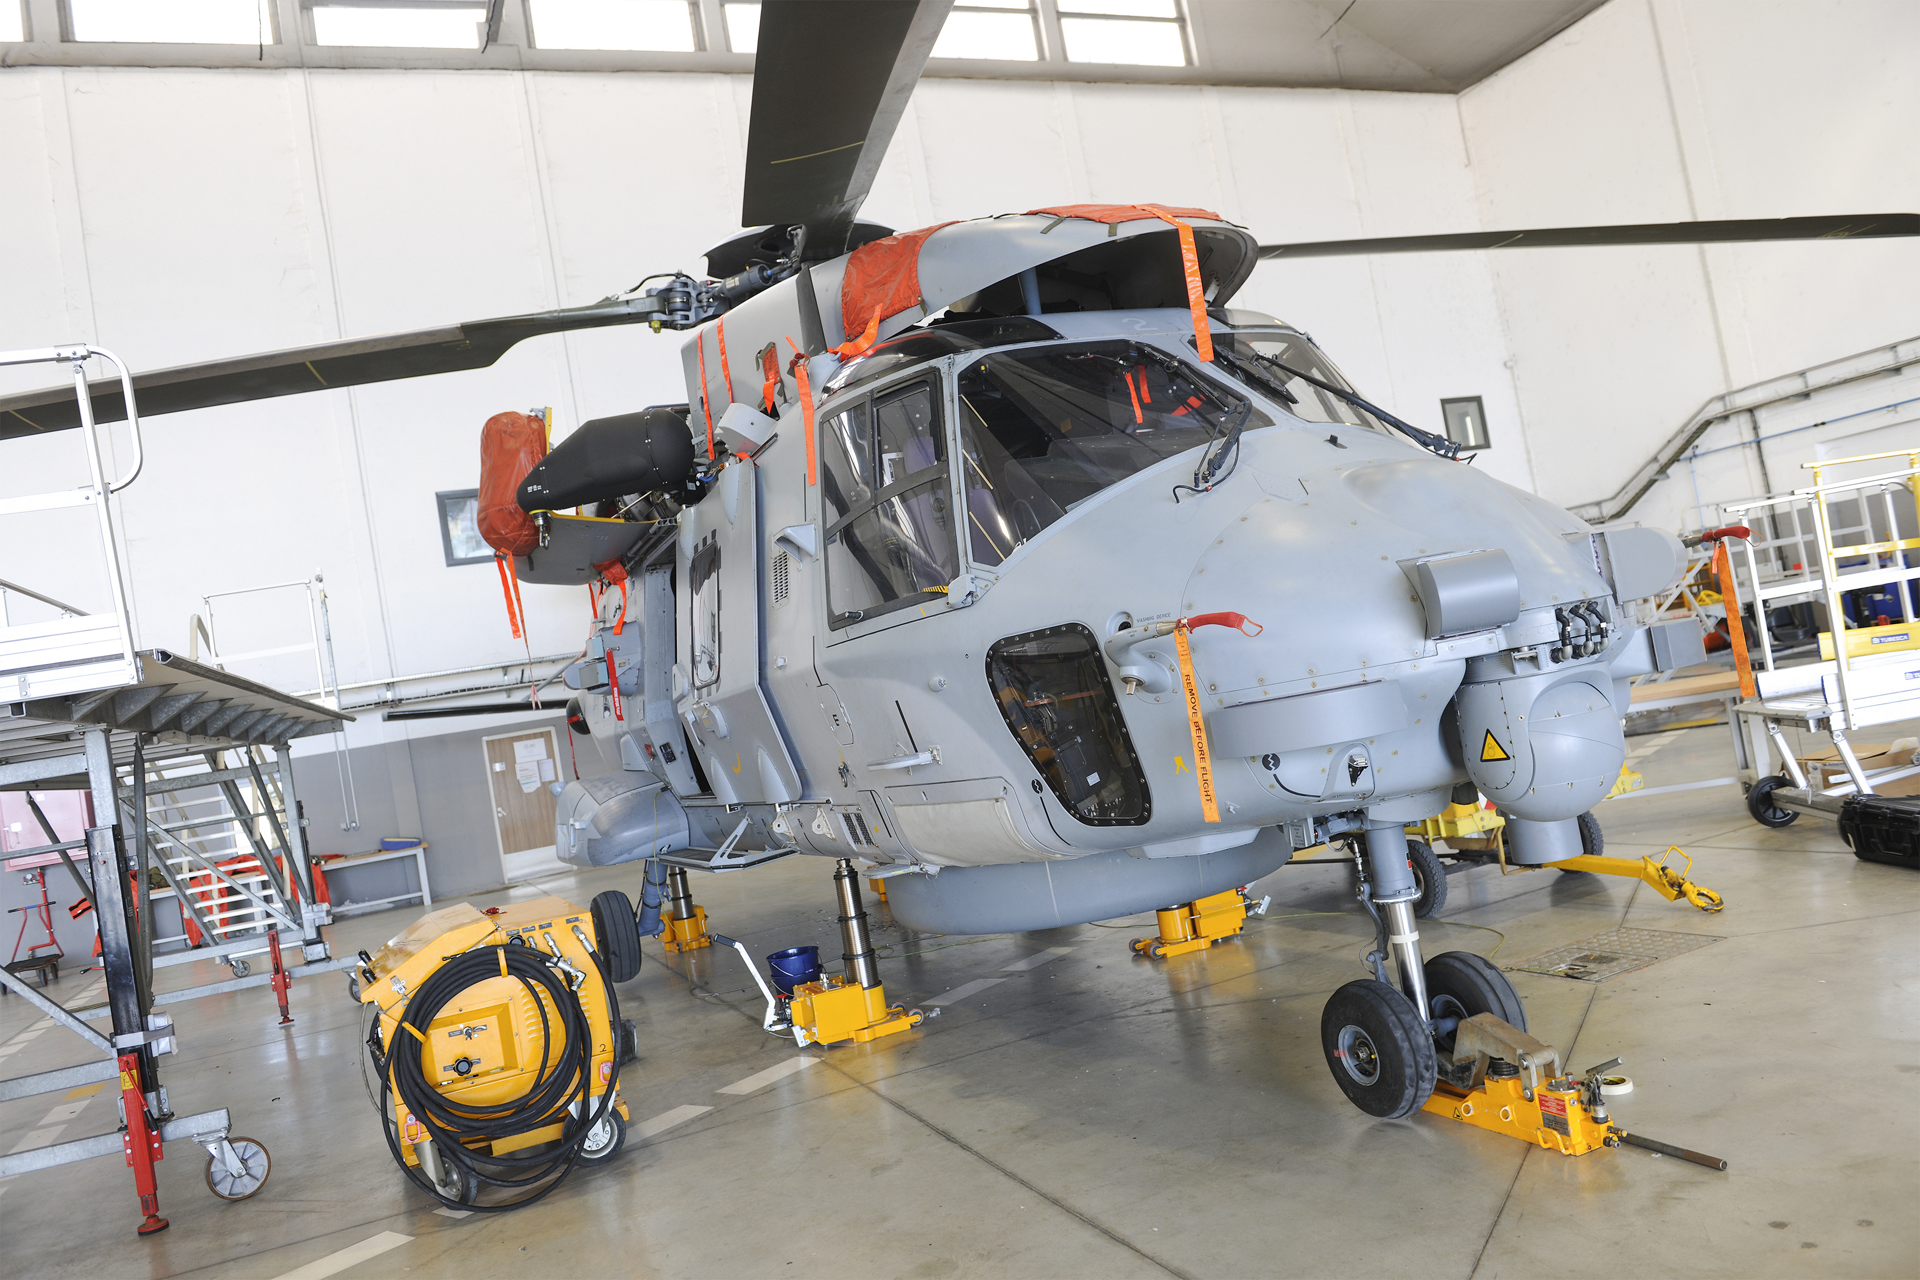 An NH90 helicopter is shown inside a maintenance facility, ready for servicing.